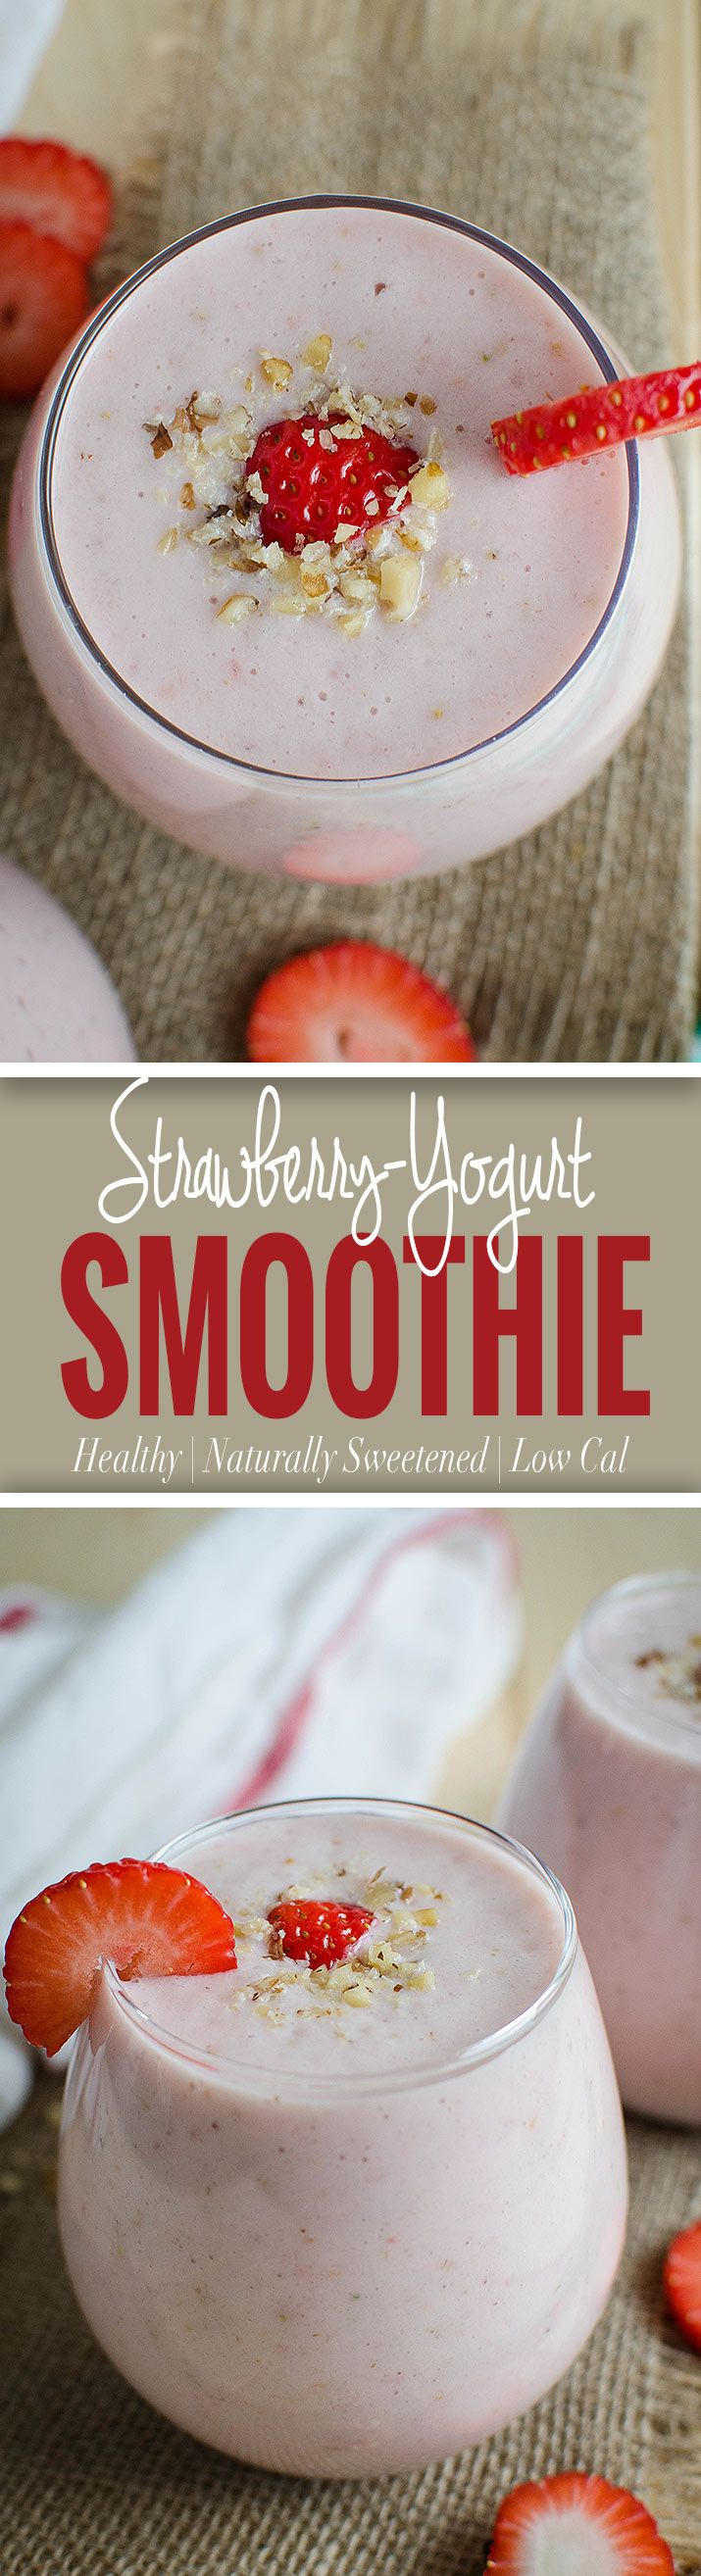 Healthy strawberry banana smoothie with yogurt -- A tasty, nutritious and low-fat treat for morning breakfasts or snacks. via @watchwhatueat